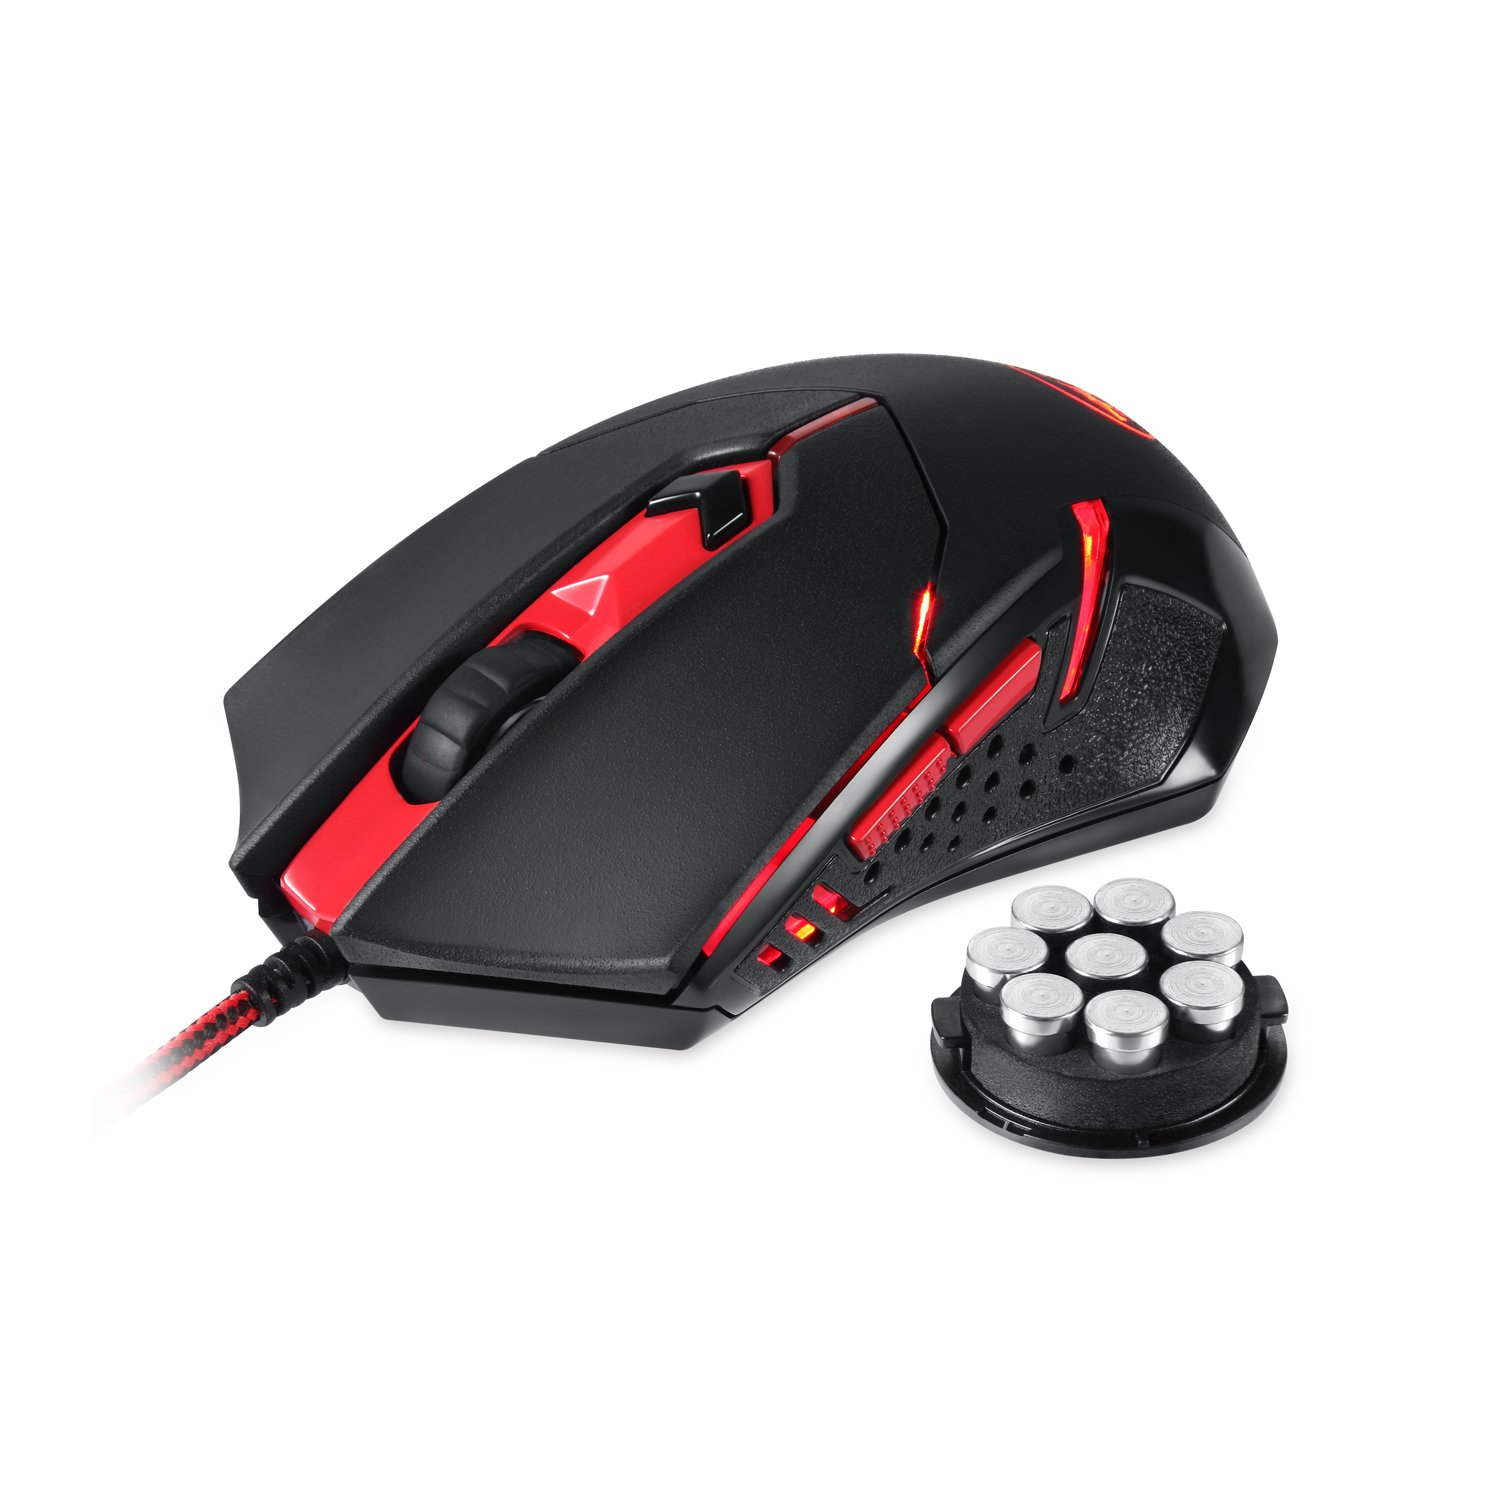 Redragon M601 Gaming Mouse, Ergonomic Wired MMO 6 Button Mouse, 3200 DPI, Red LED Backlit for Windows PC Gamer (Black Wired Mouse) by Redragon